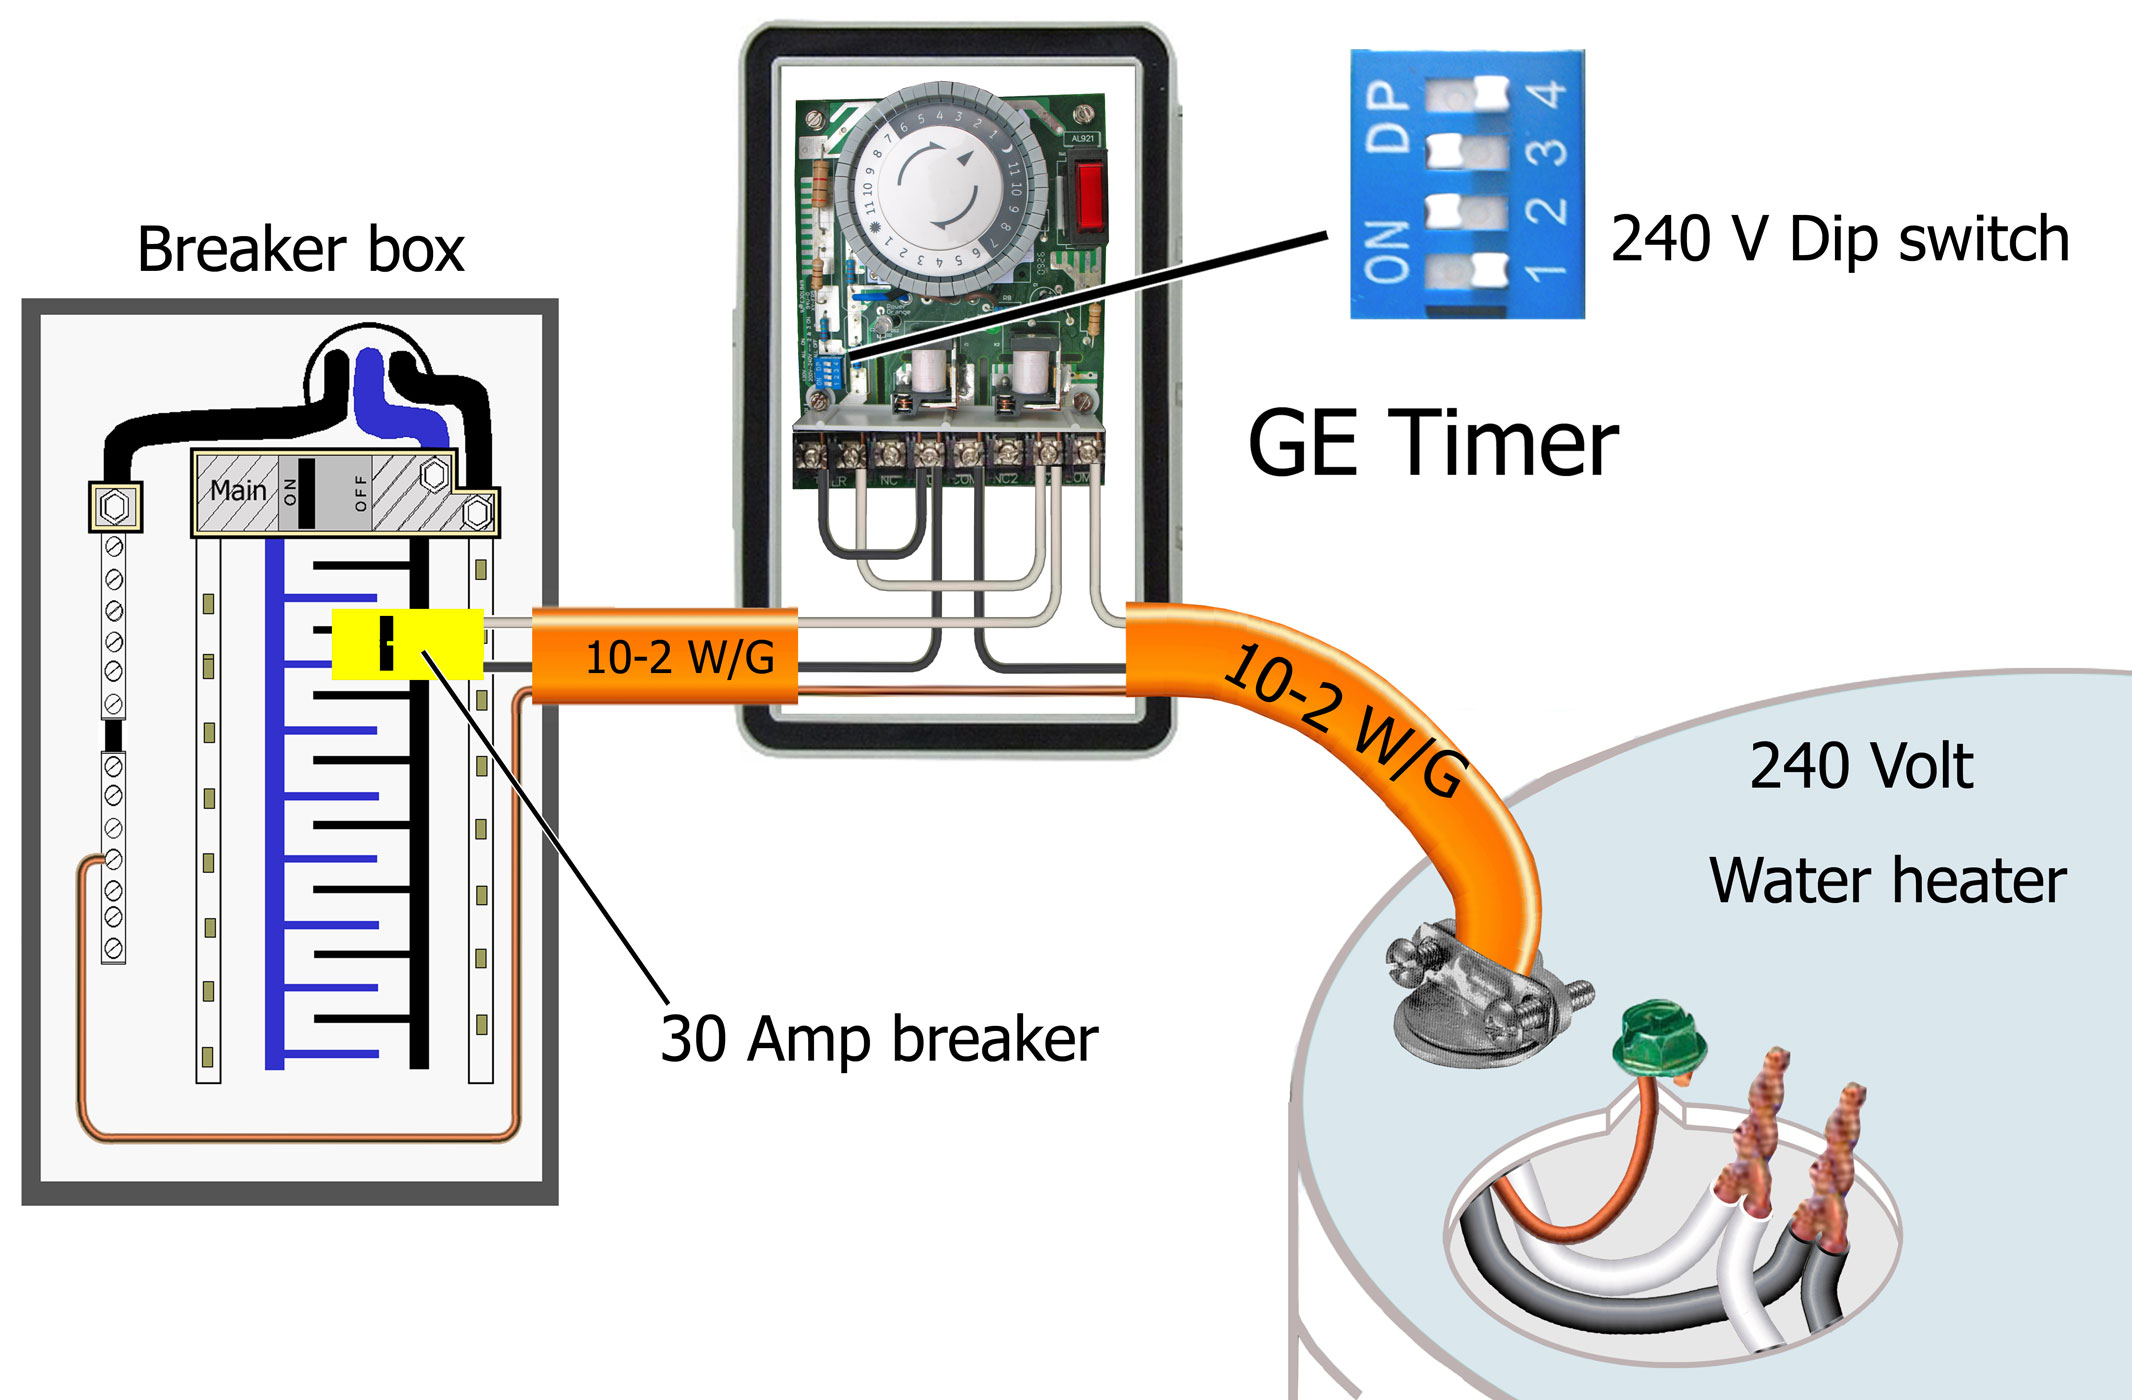 GE to water heater 500 how to wire ge 15207 timer how to wire an electric water heater diagram at mifinder.co